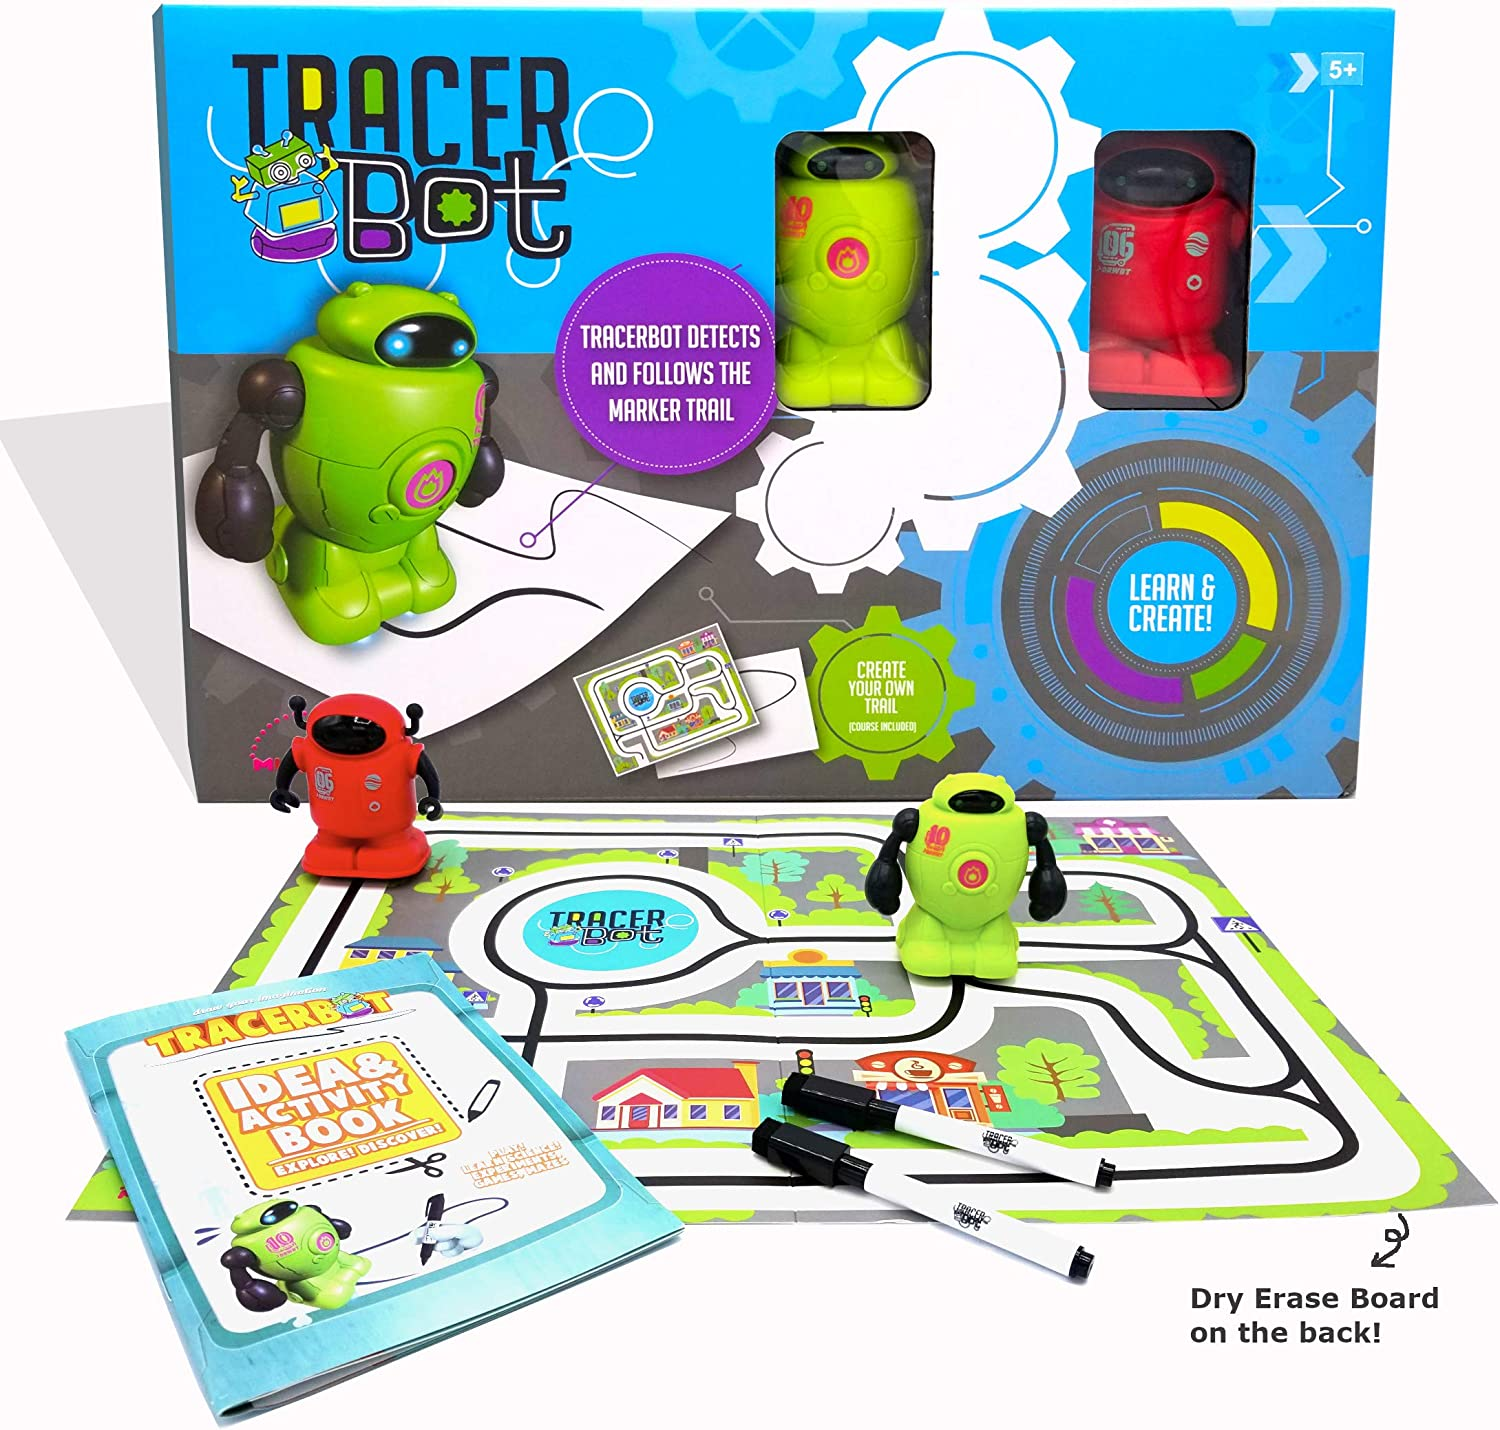 MUKIKIM Tracerbot Set (2 Robot Set) – Mini Inductive Robot That Follows The Black Line You Draw. Fun, Educational, & Interactive Stem Toy! Includes Trail Map, Dry Erase Board, & Playbook